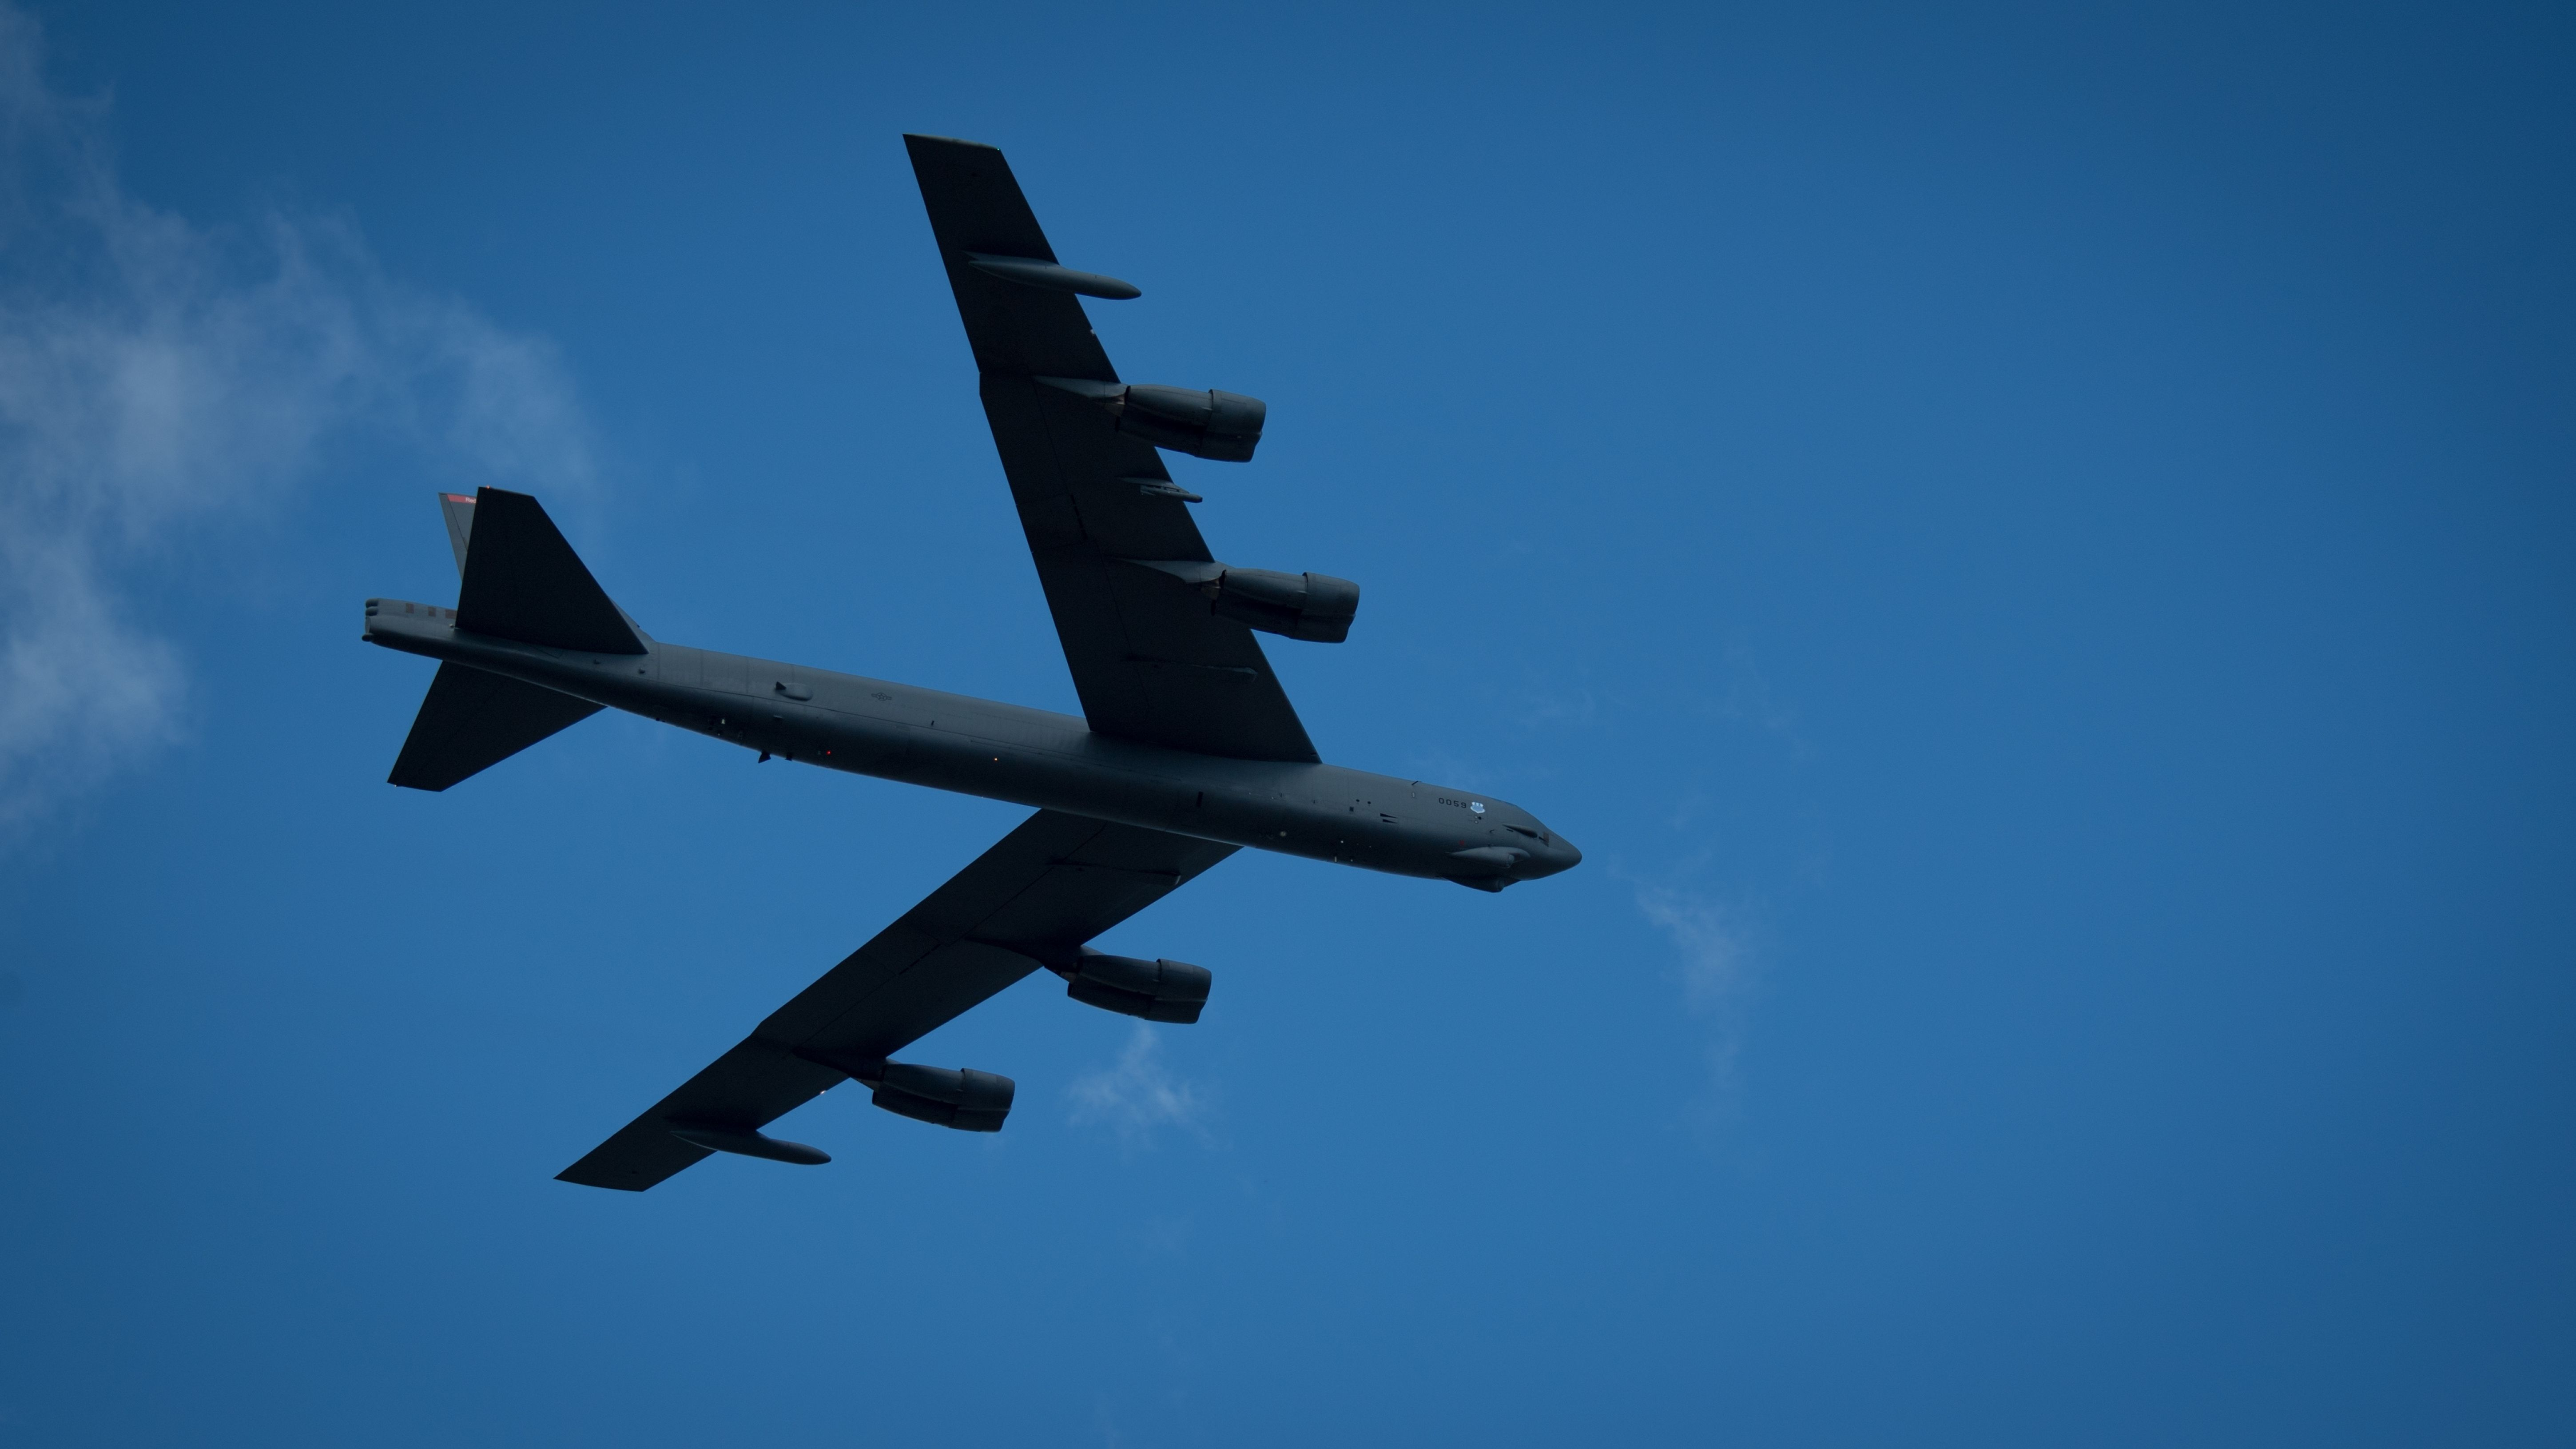 The B-52 Will Fly and Fight for 100 Years